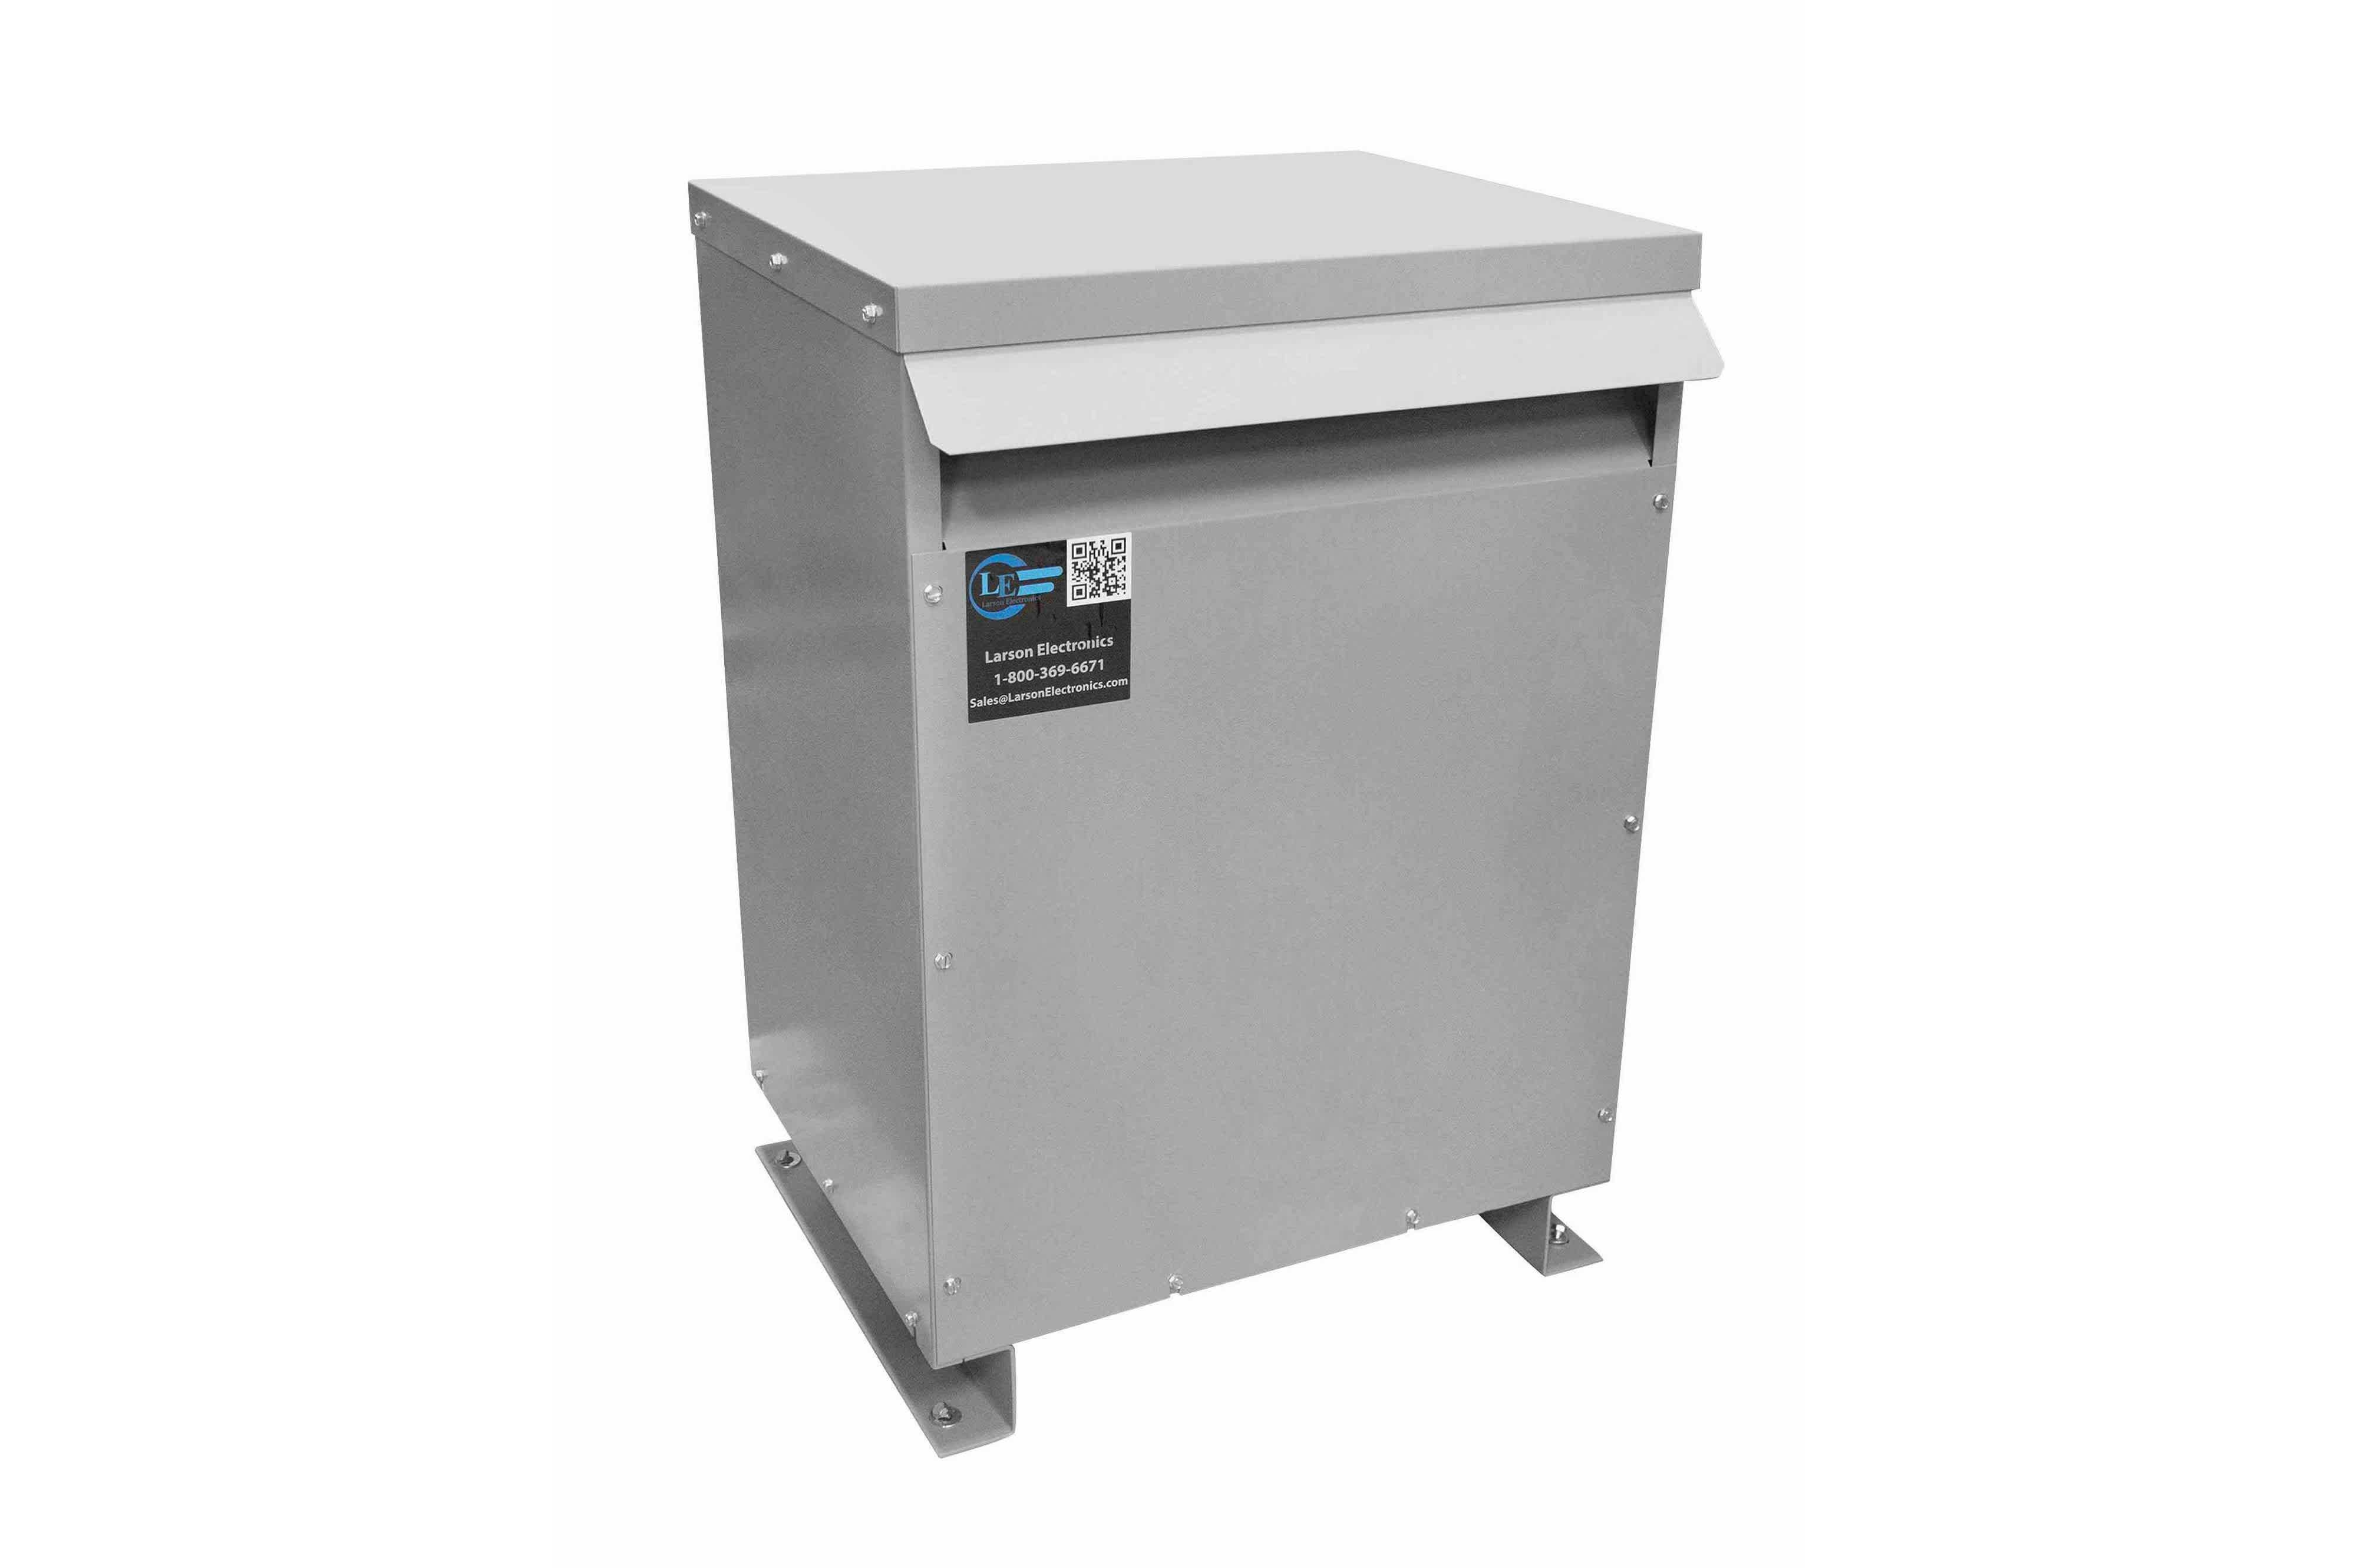 13 kVA 3PH Isolation Transformer, 400V Wye Primary, 208V Delta Secondary, N3R, Ventilated, 60 Hz